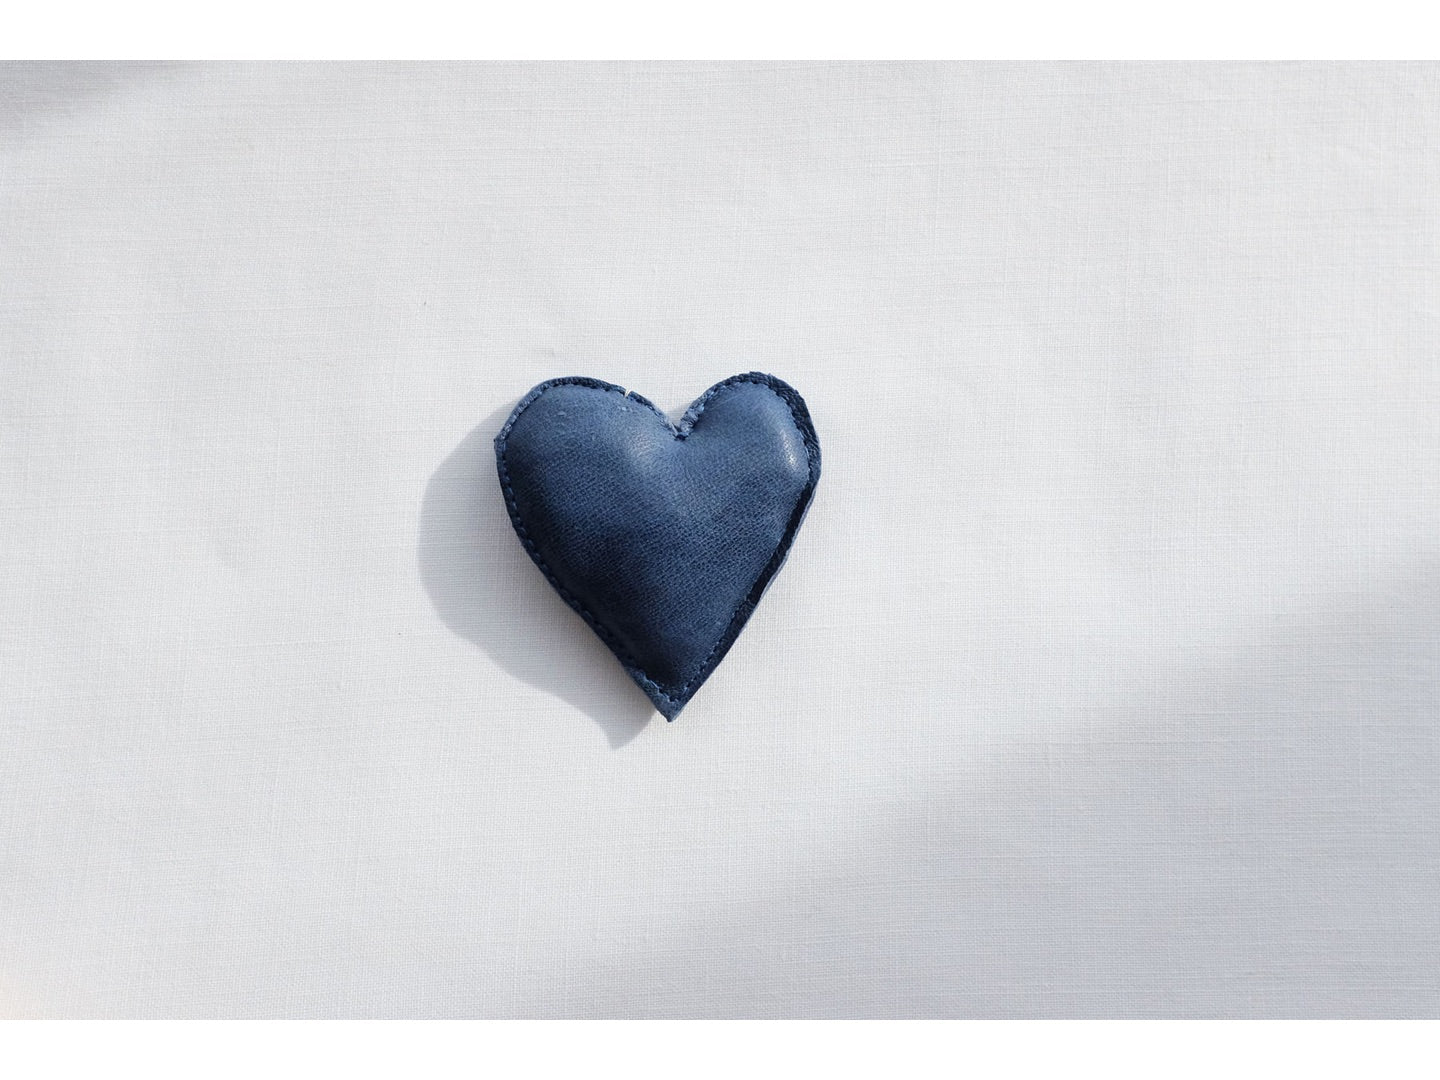 HEART in blue, small